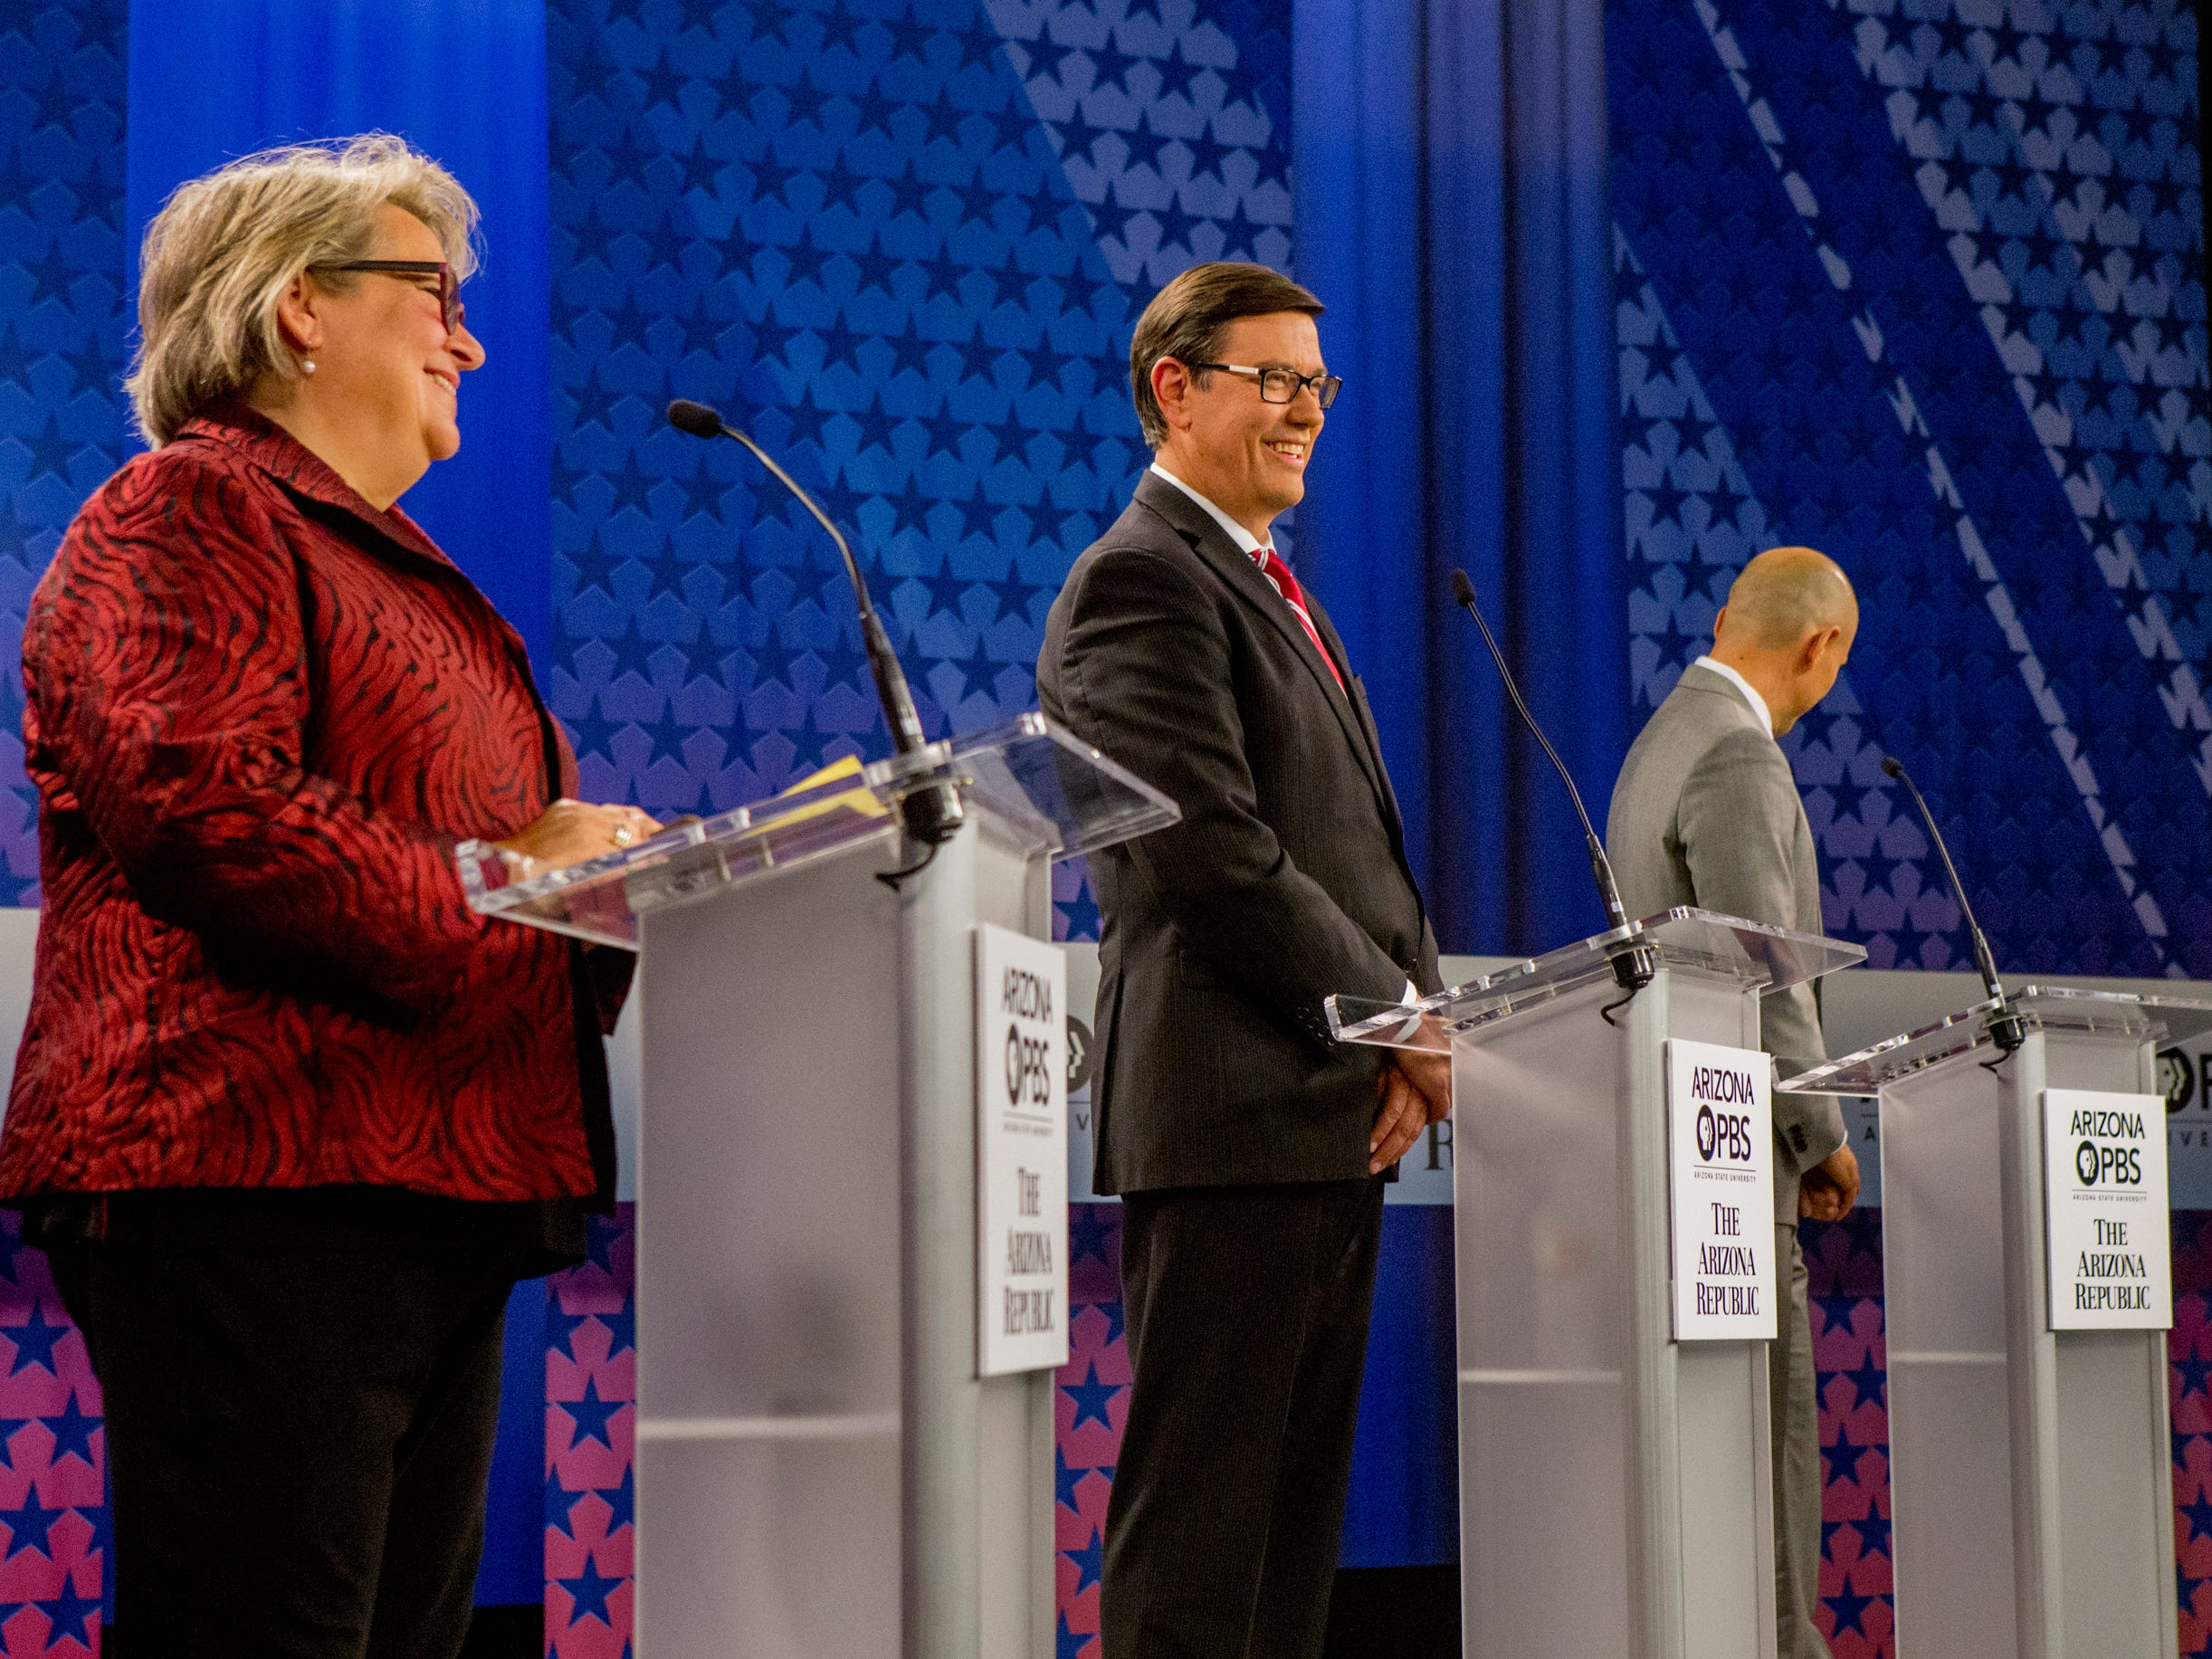 Democratic gubernatorial candidates wait for the beginning of the program on July 31, 2018, during a debate among Democrats vying for Arizona governor at Arizona State University's Walter Cronkite School of Journalism in Phoenix, Arizona.